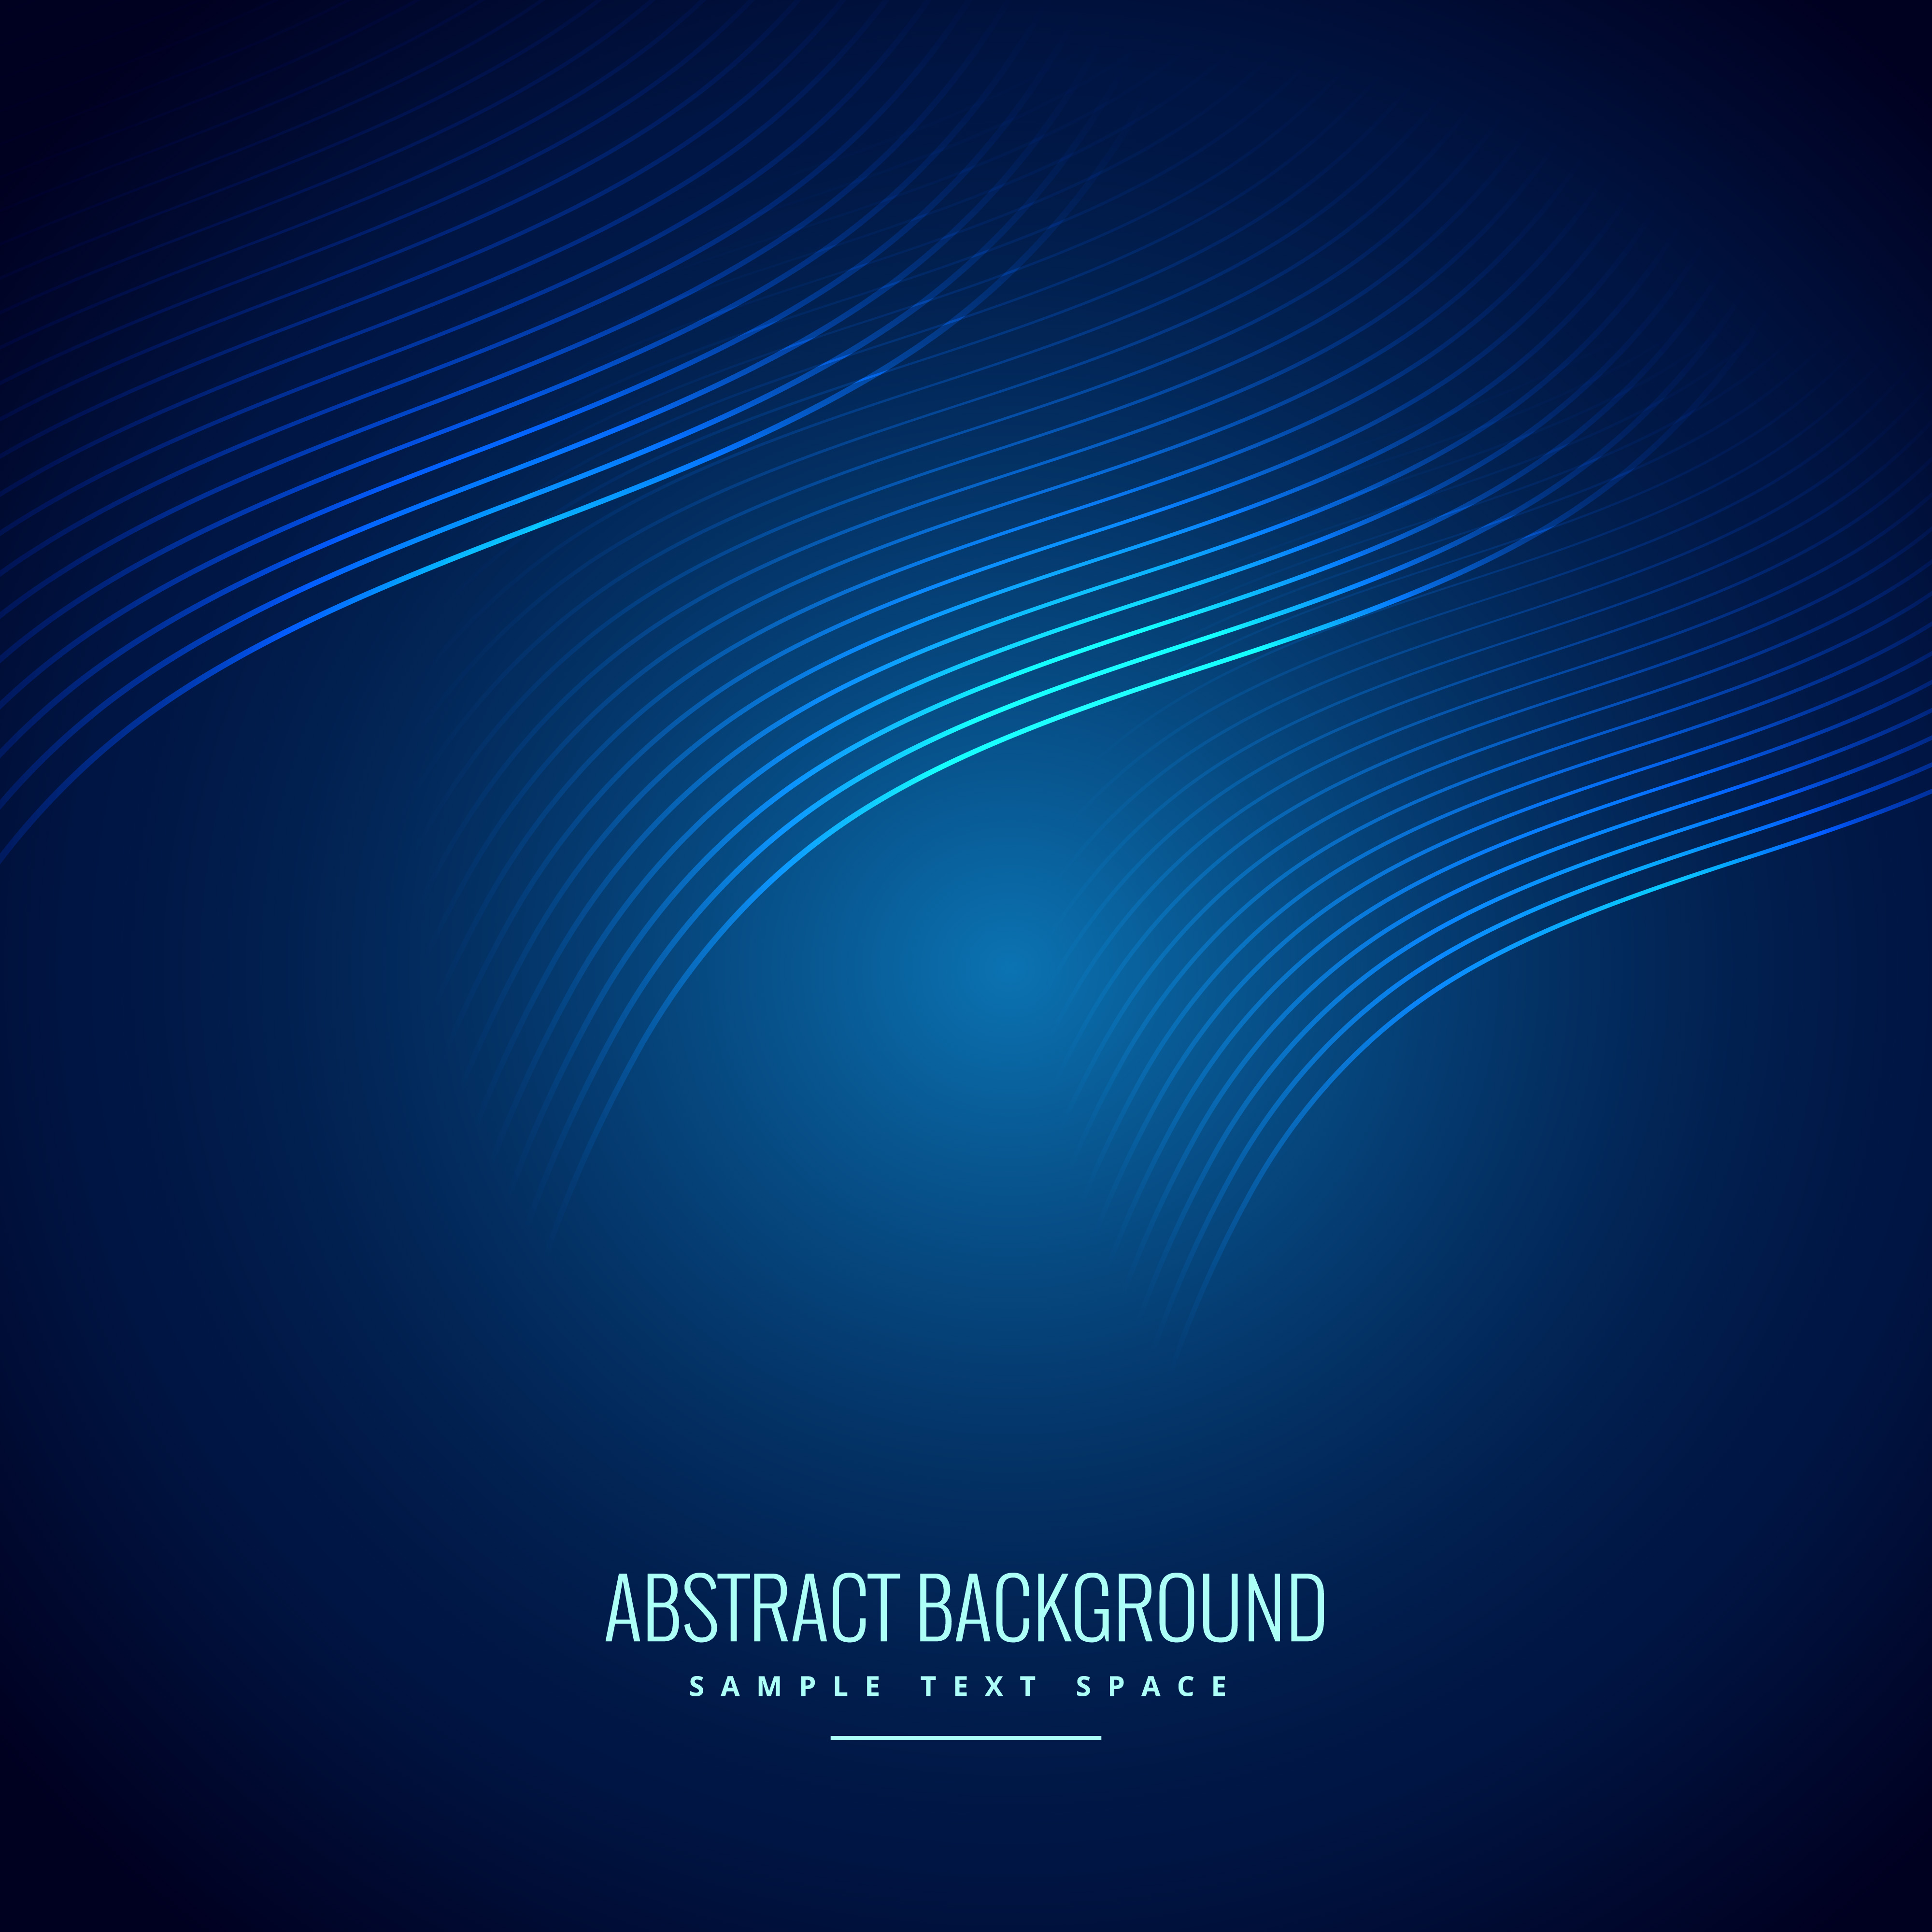 Vector Drawing Lines Html : Abstract blue background with wave lines download free